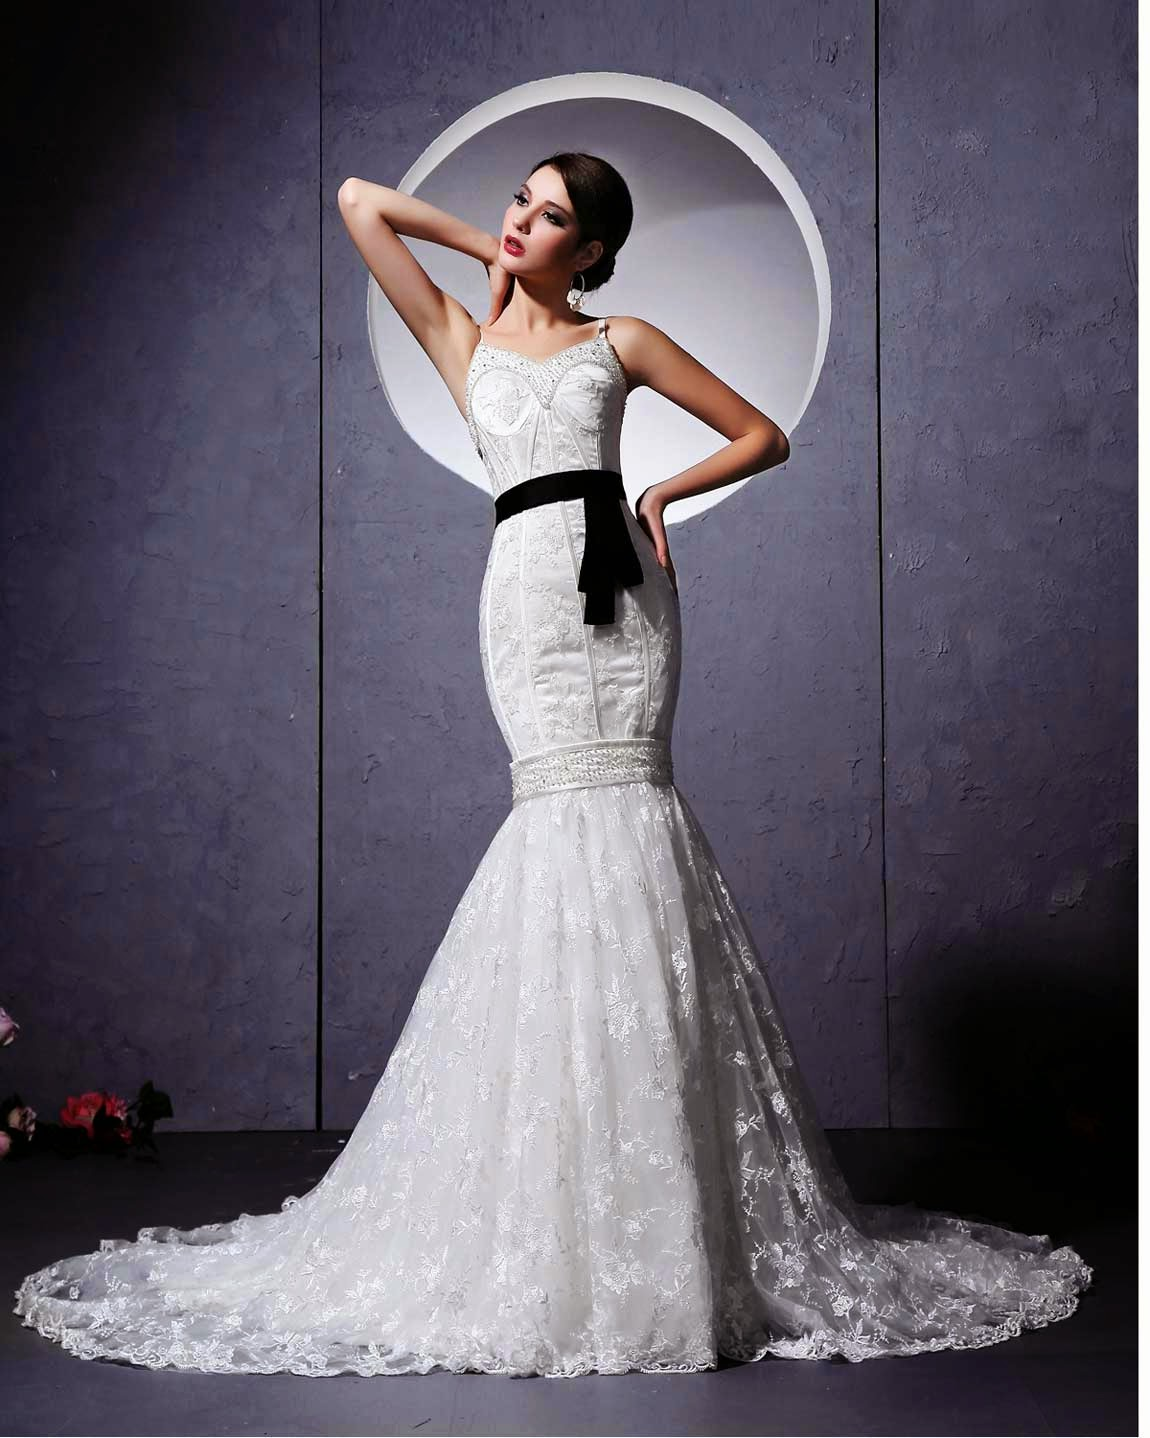 Bling mermaid wedding dresses photos concepts ideas for Mermaid style wedding dresses with bling